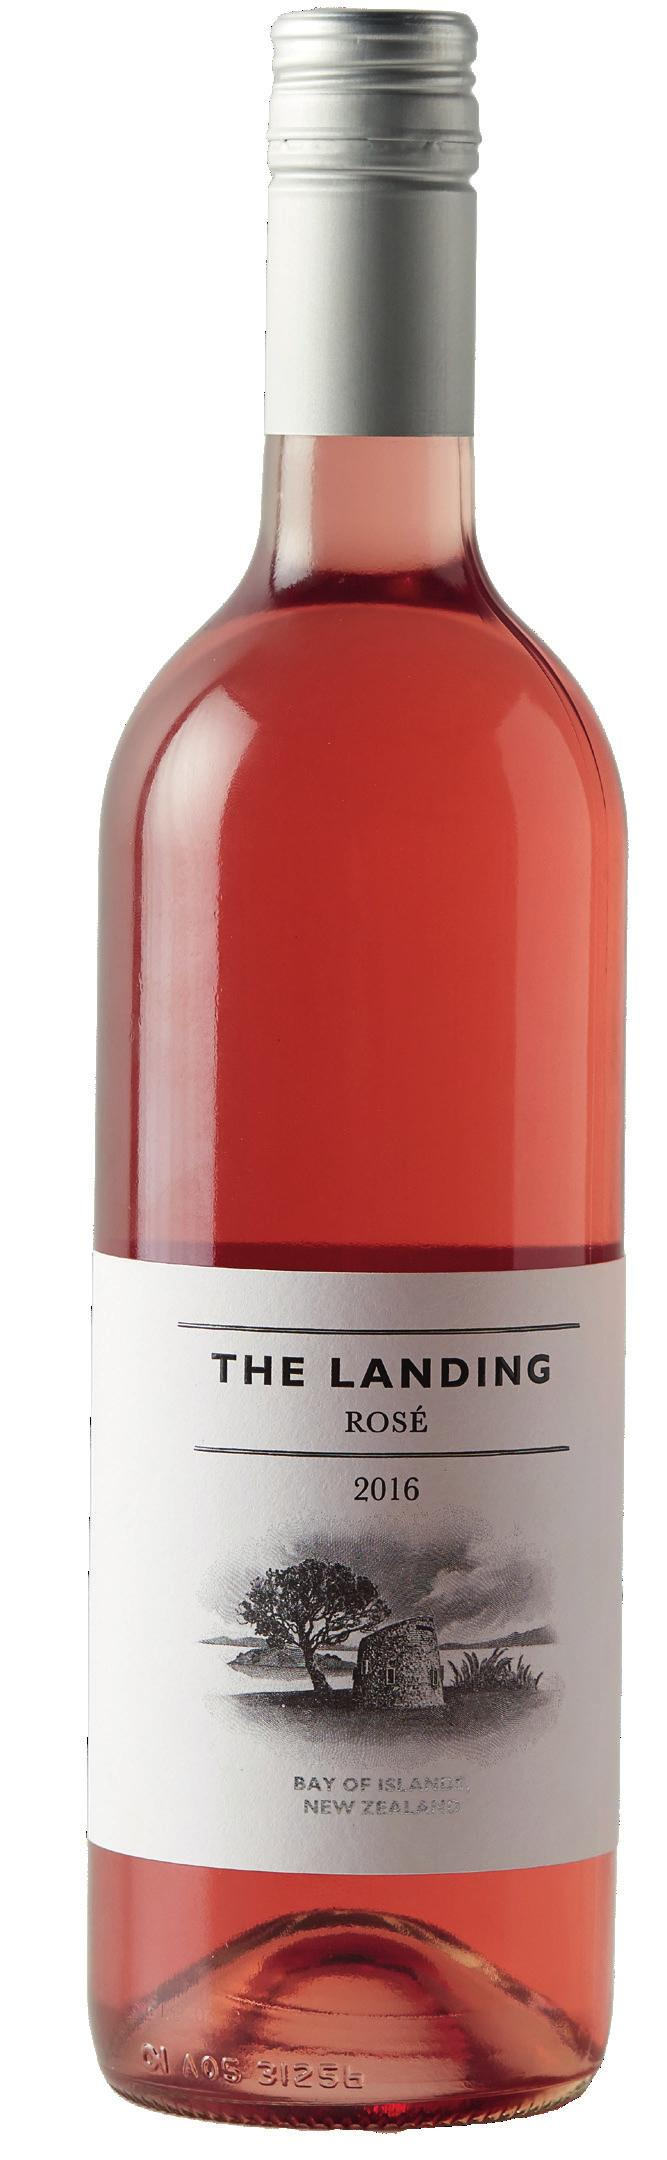 THE LANDING ROSE 2016 Grown on the coastal slopes overlooking the Bay of Islands, the 2016 Rose is an expression of fresh peach and fruit sweetness are balanced by a crisp, refreshing finish.